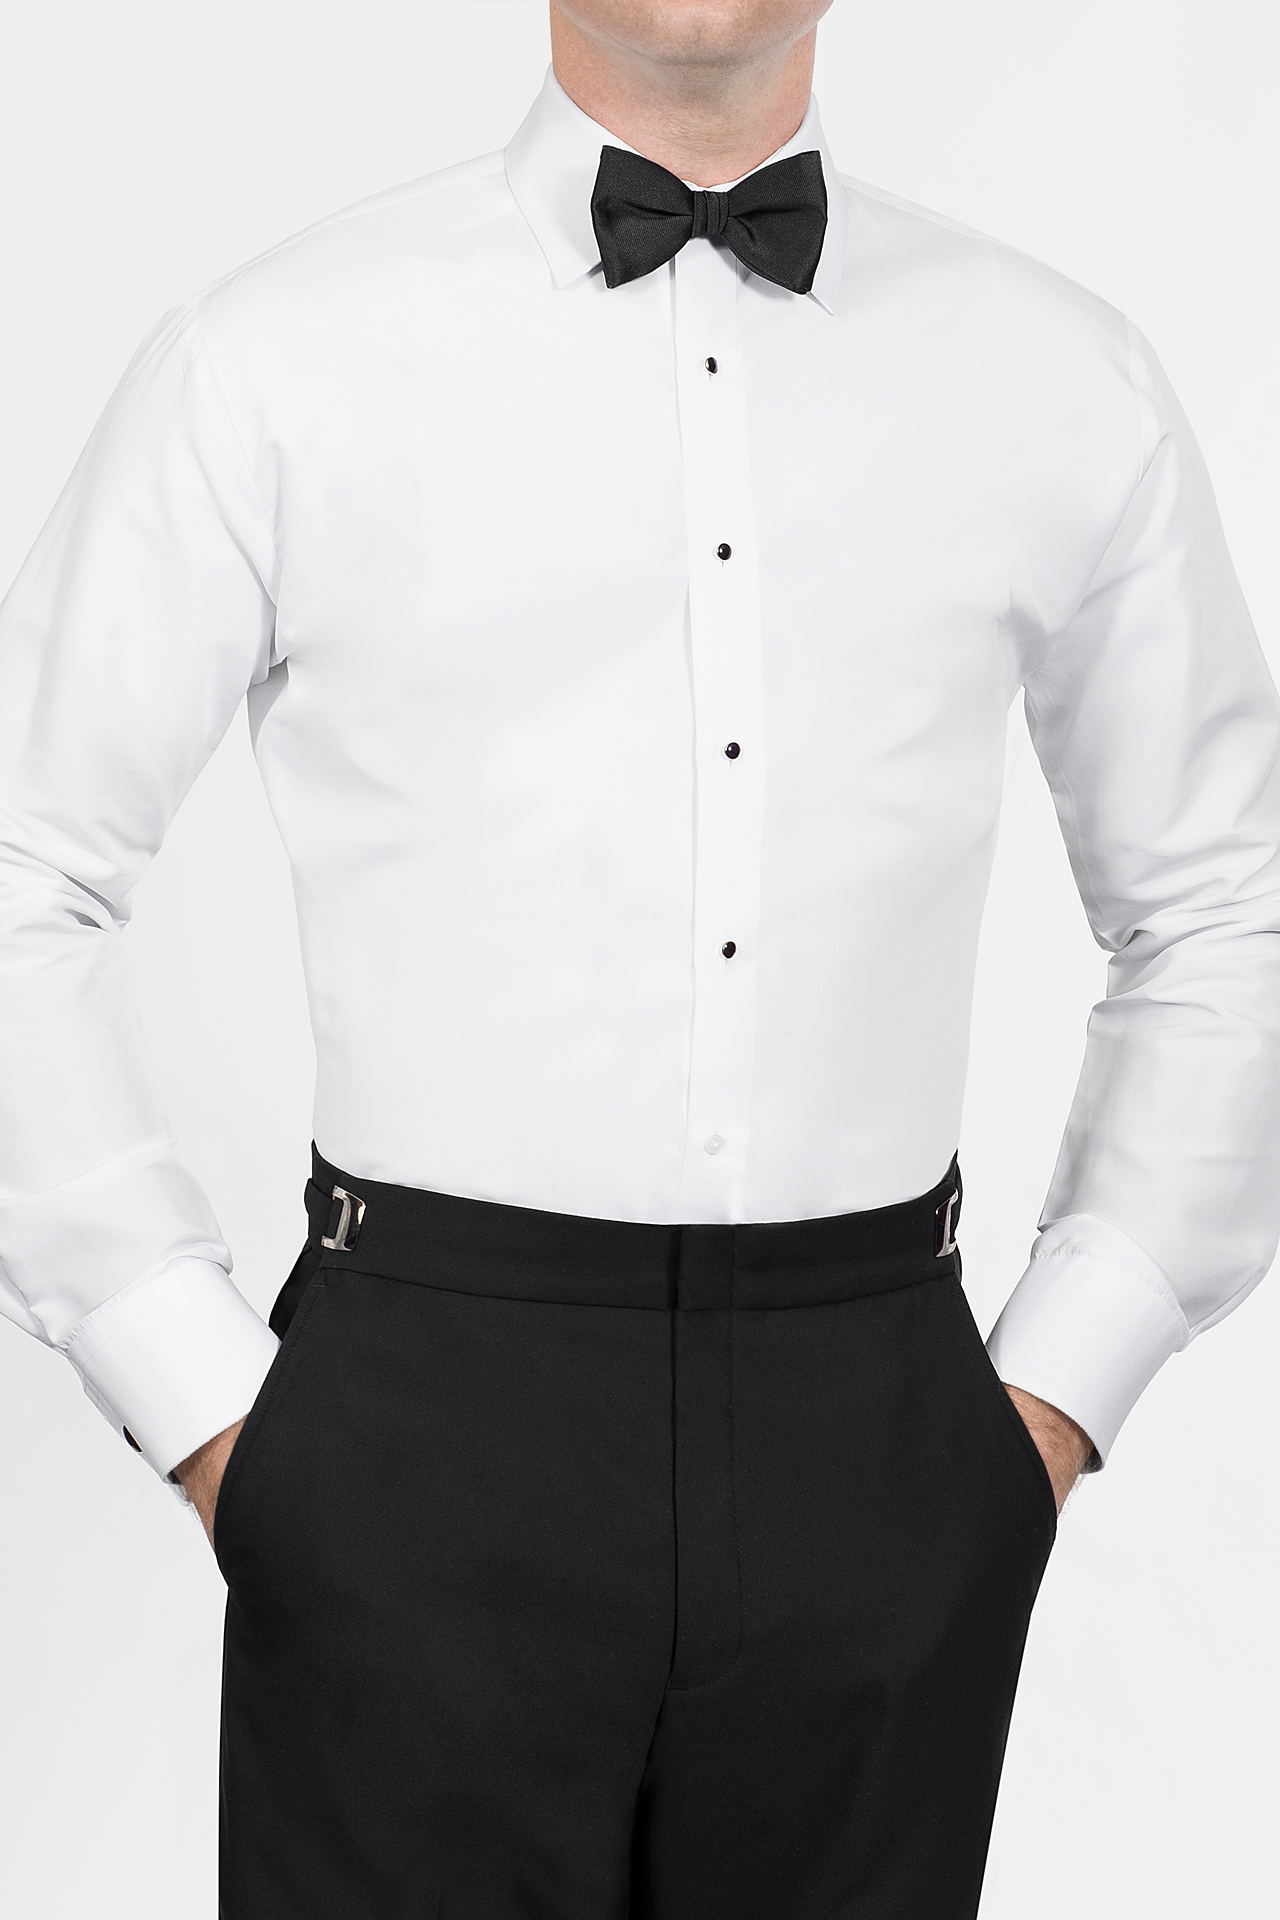 White Fitted Microfiber Jim S Formal Wear